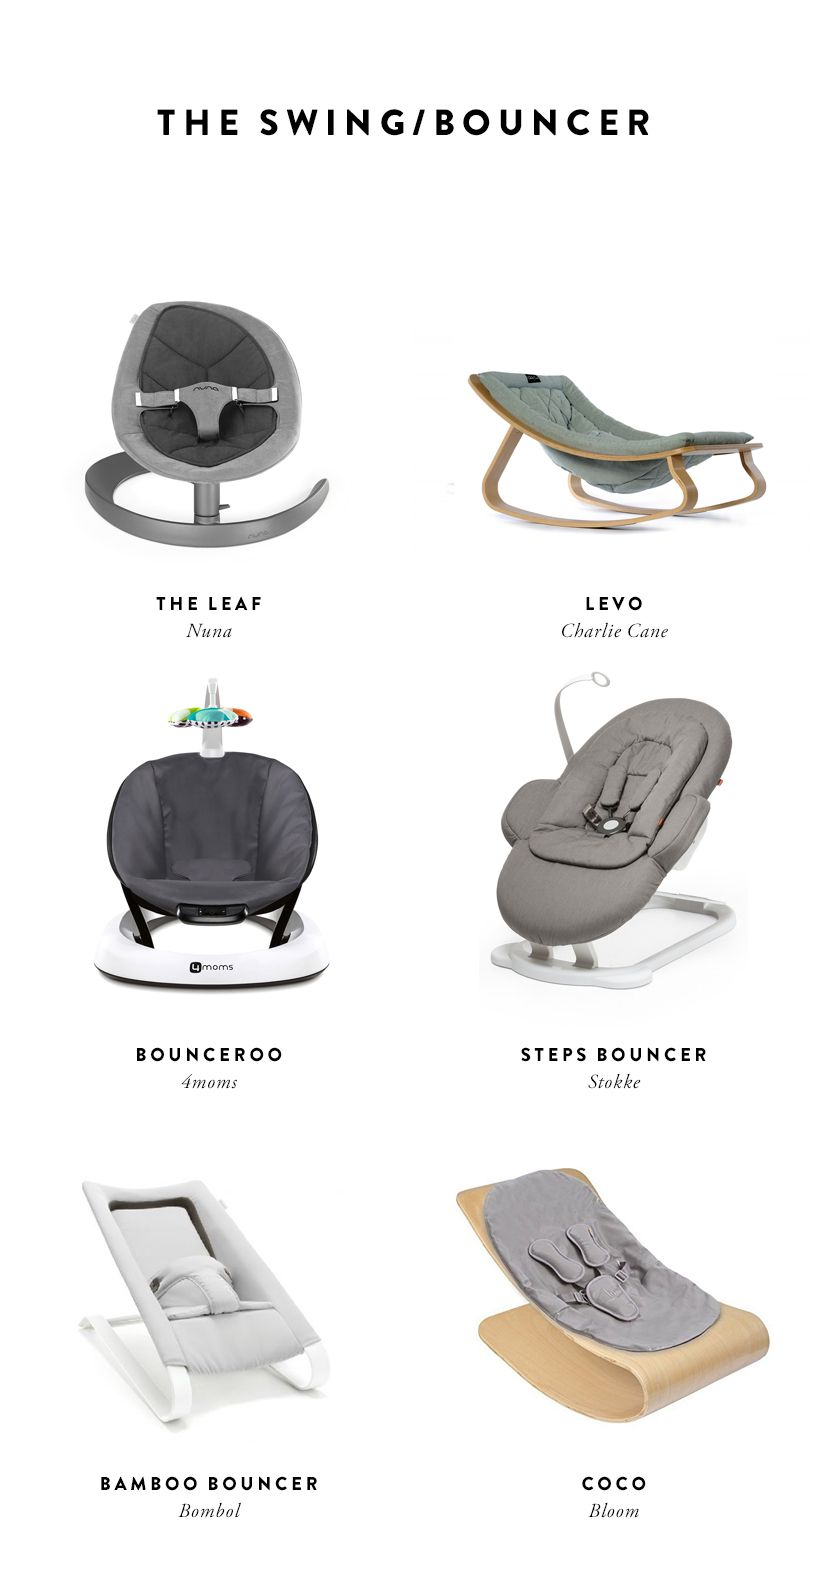 Baby Shopping Cart Hammock Supermarket Shopping Cart Baby Seat Newborn Print Safe And Convenient Shopping Troller Seat Cusion Exquisite Craftsmanship; Activity & Gear Mother & Kids